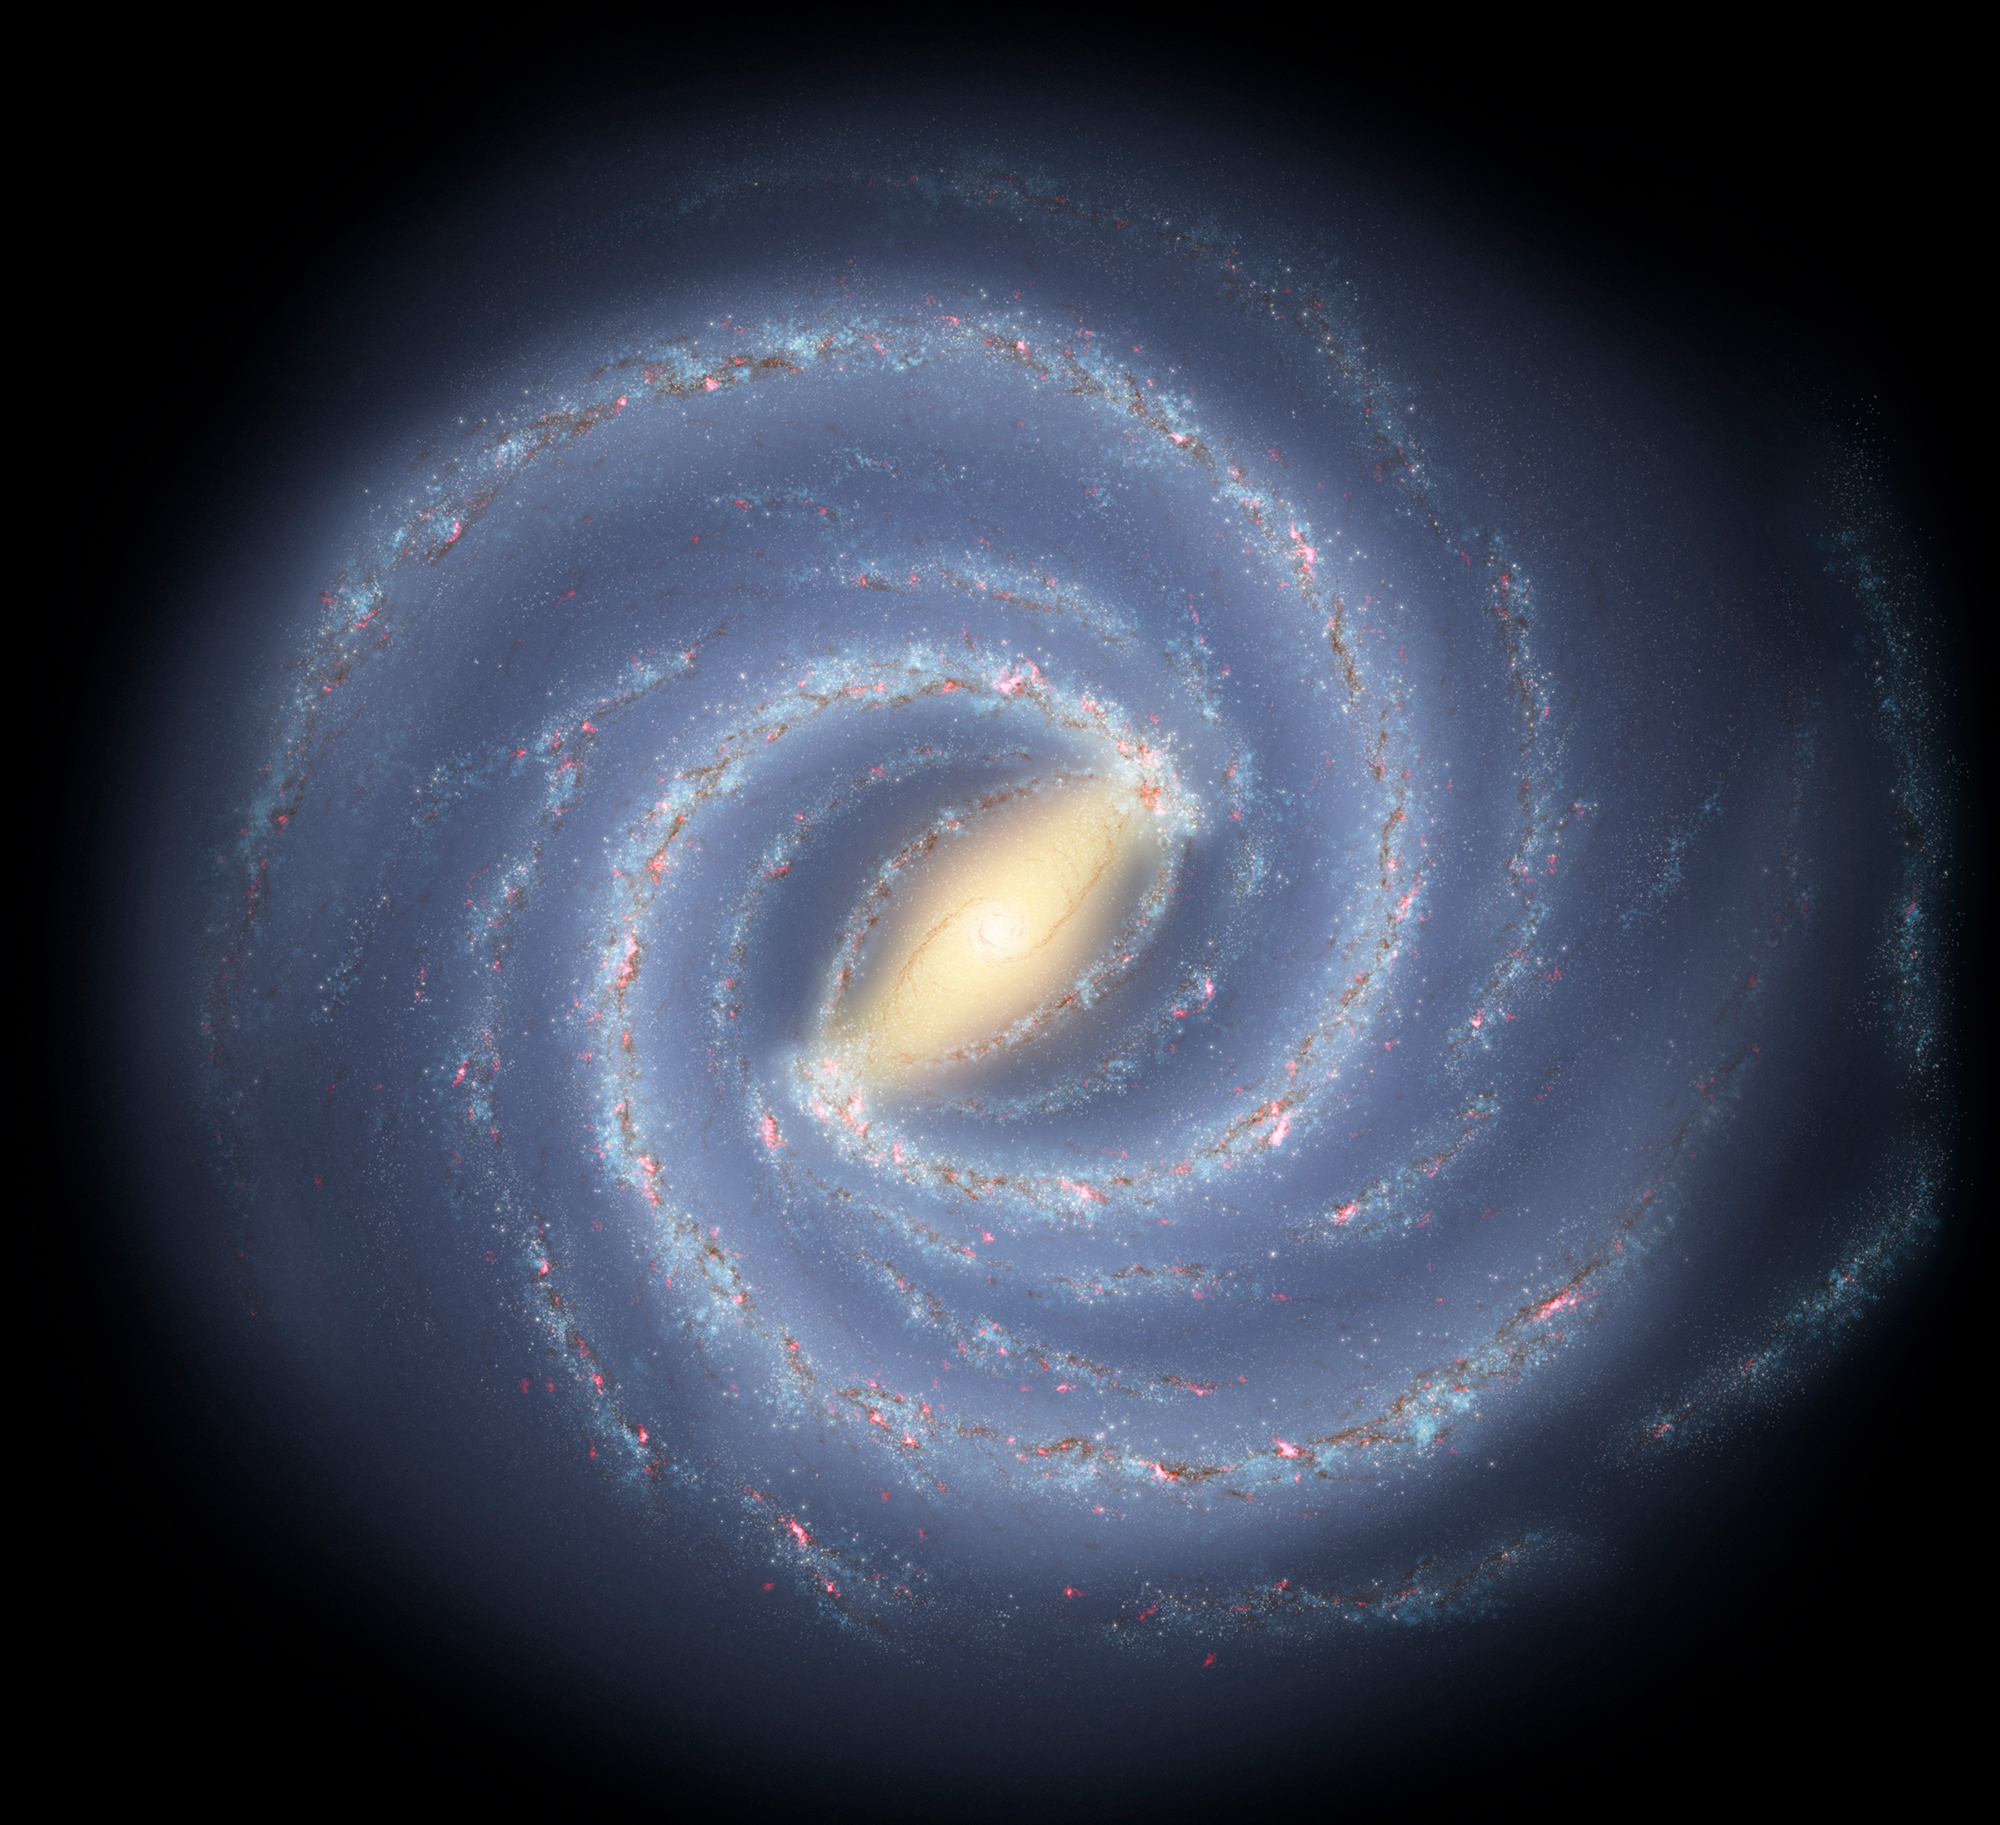 Center Of The Milky Way Has Thousands Of Black Holes, Study Shows